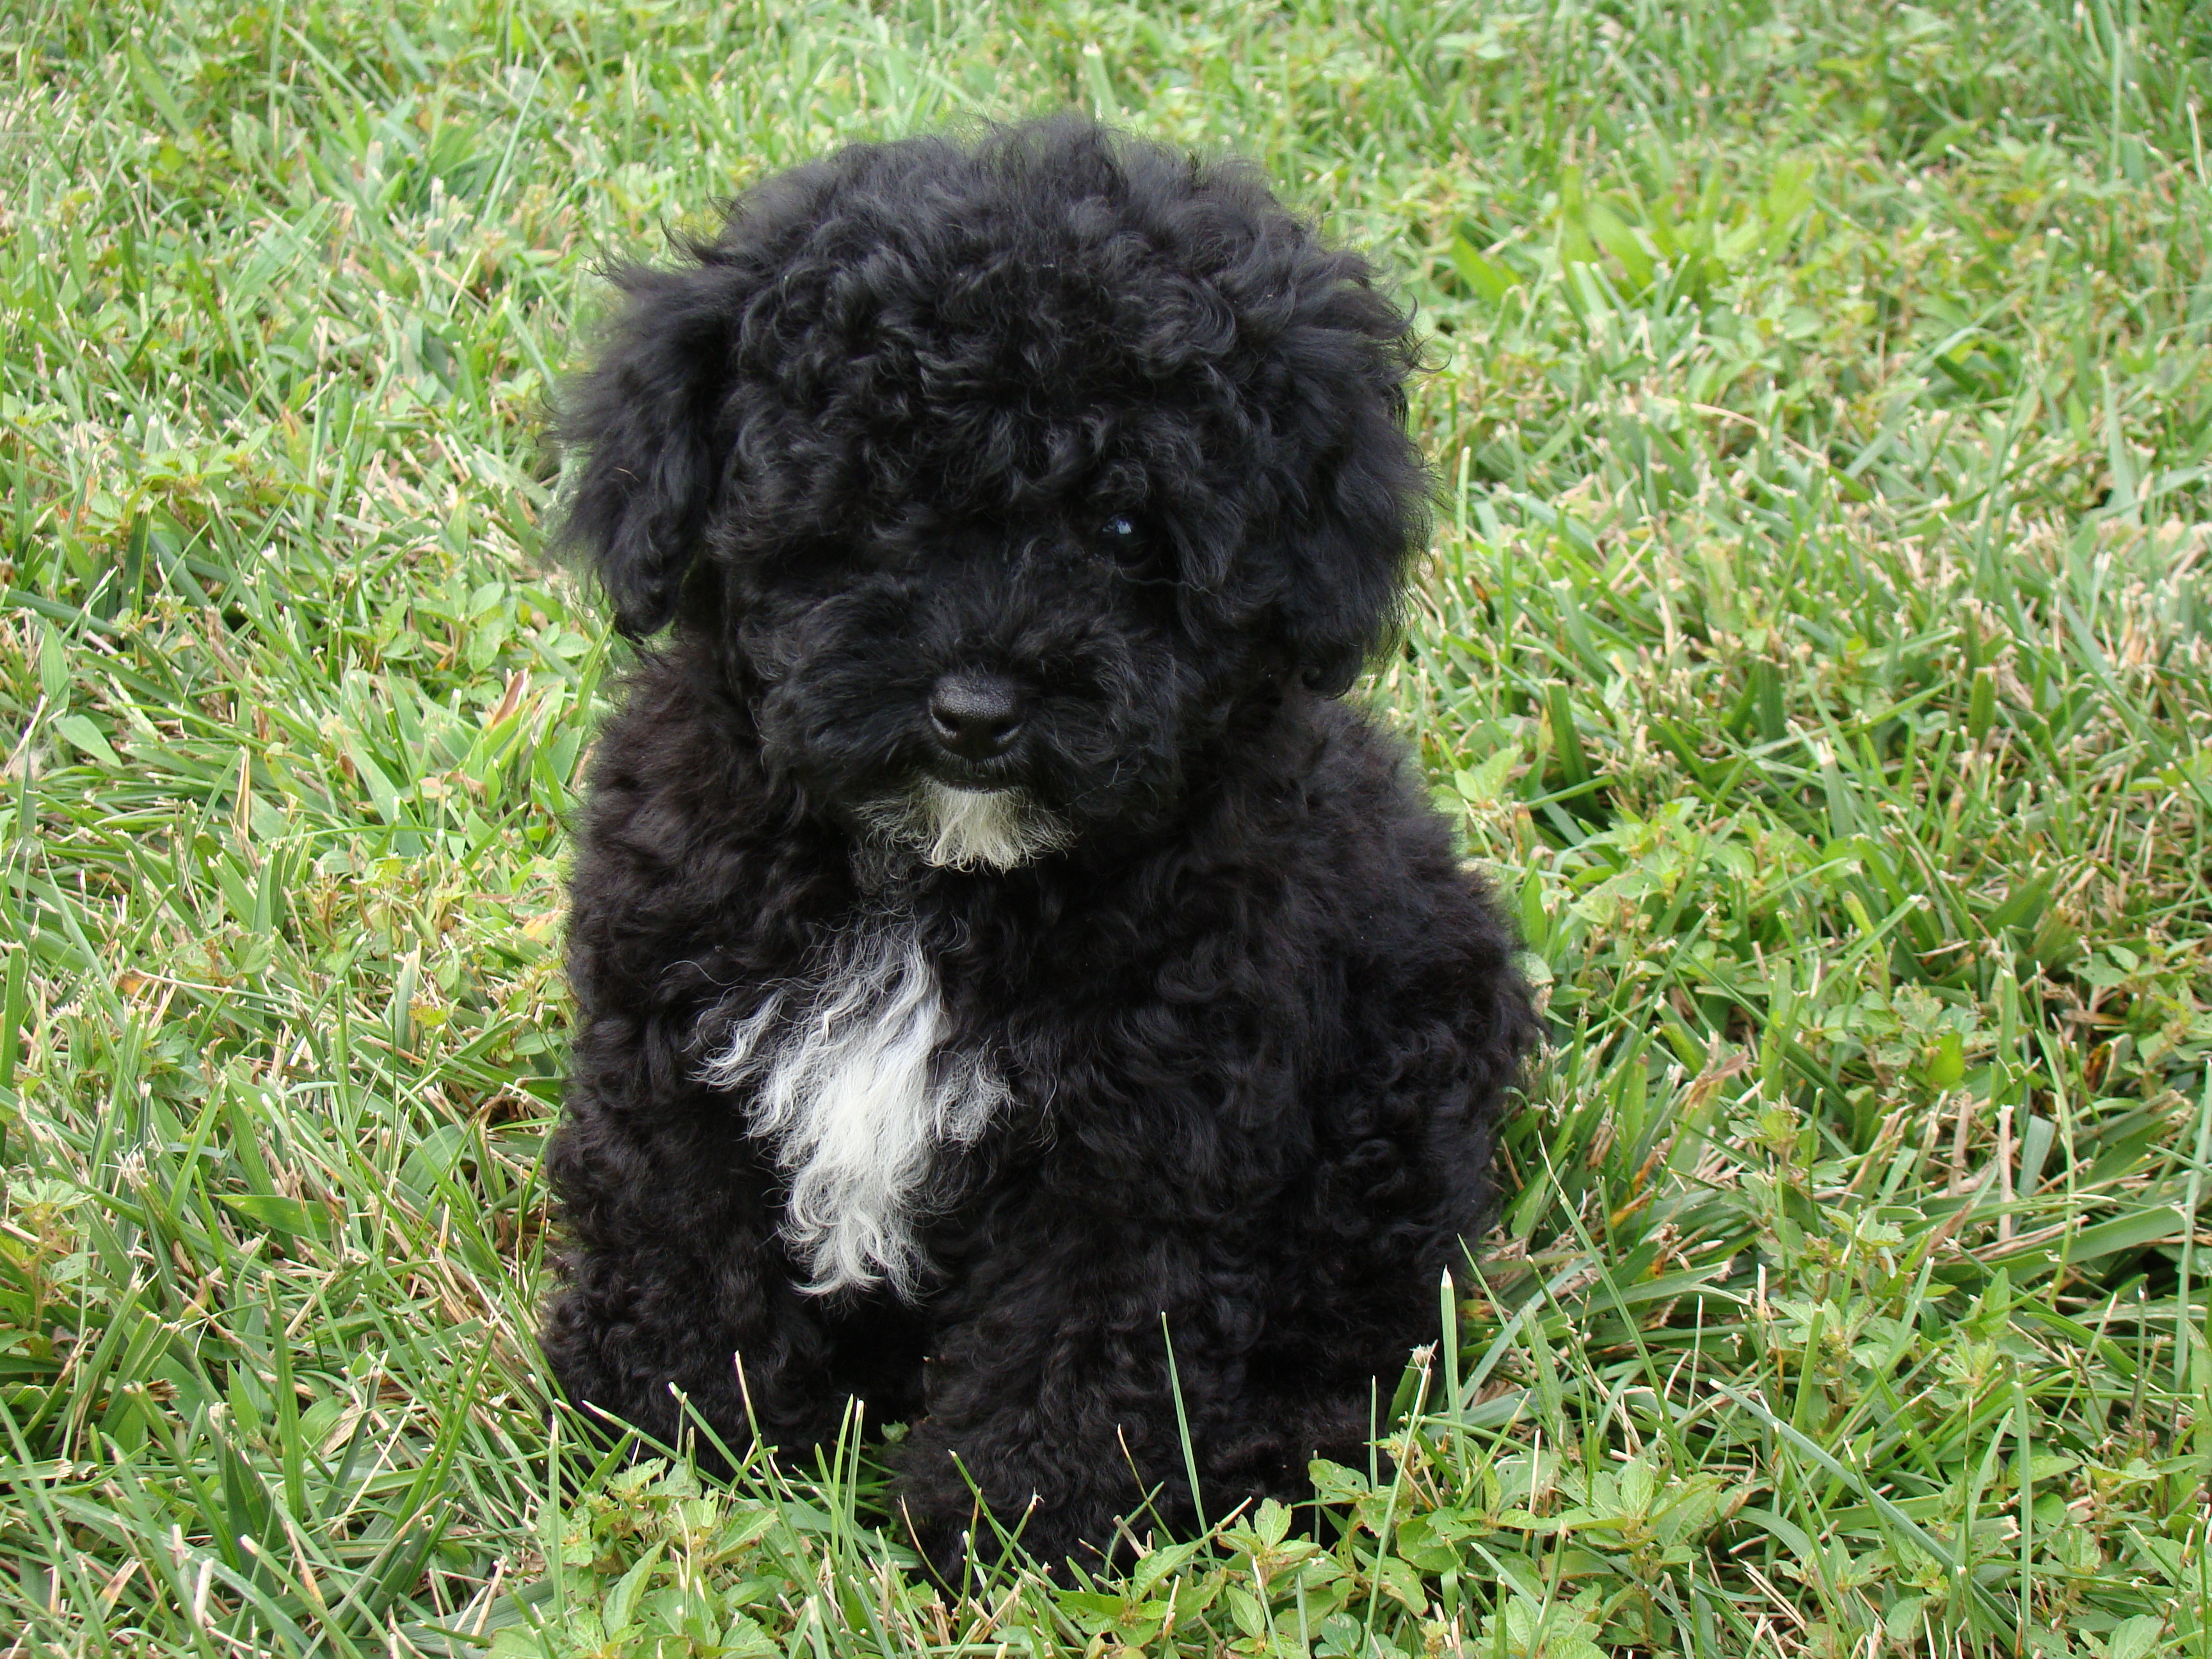 Malti-Poo Dog Breed Pictures, 1